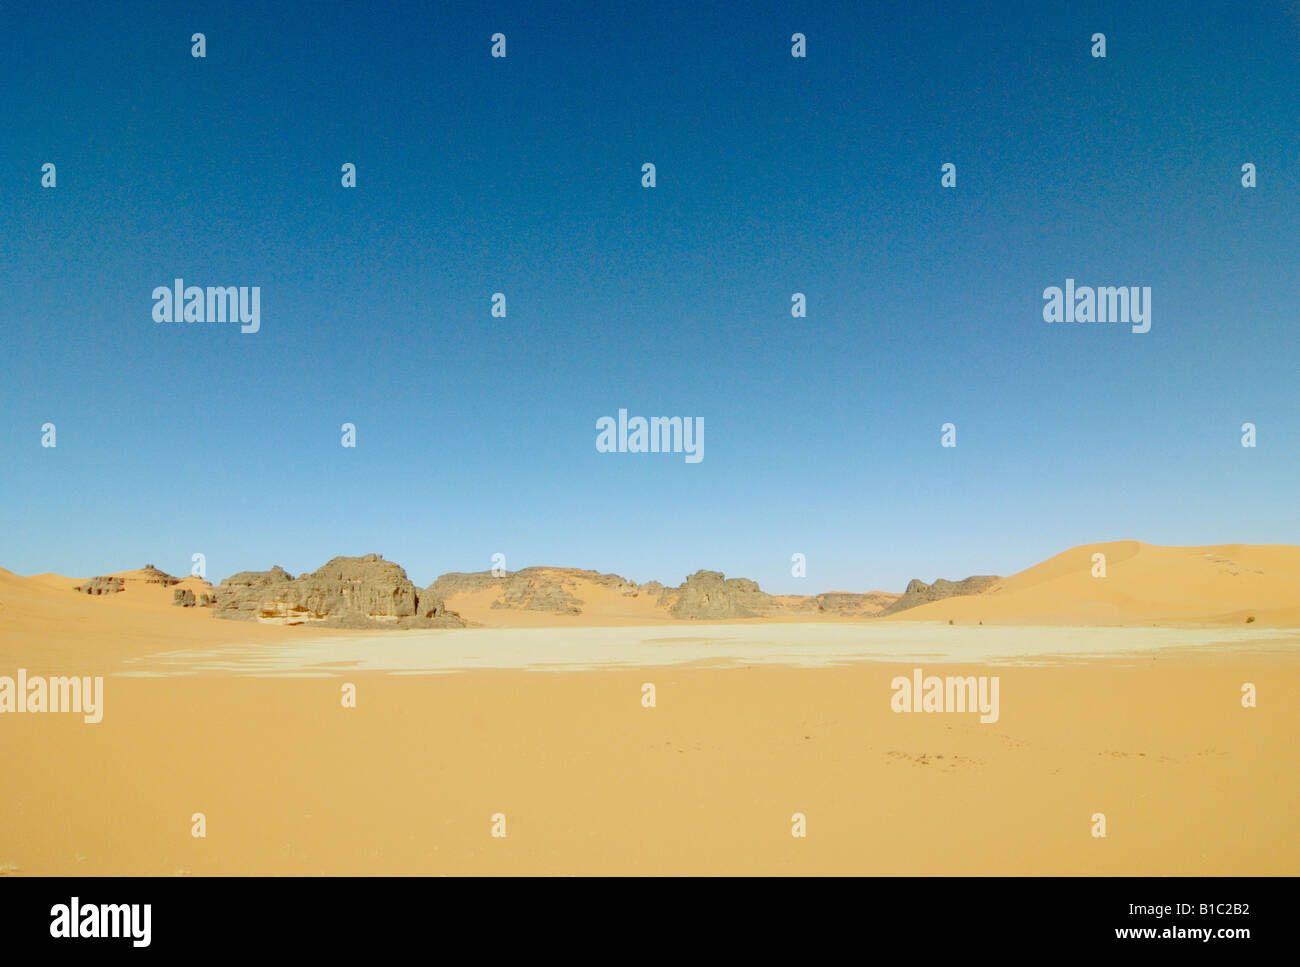 geography / travel, Algeria, landscapes, Sahara Desert, dune of Erg Tin Merzouga, Additional-Rights-Clearance-Info - Stock Image